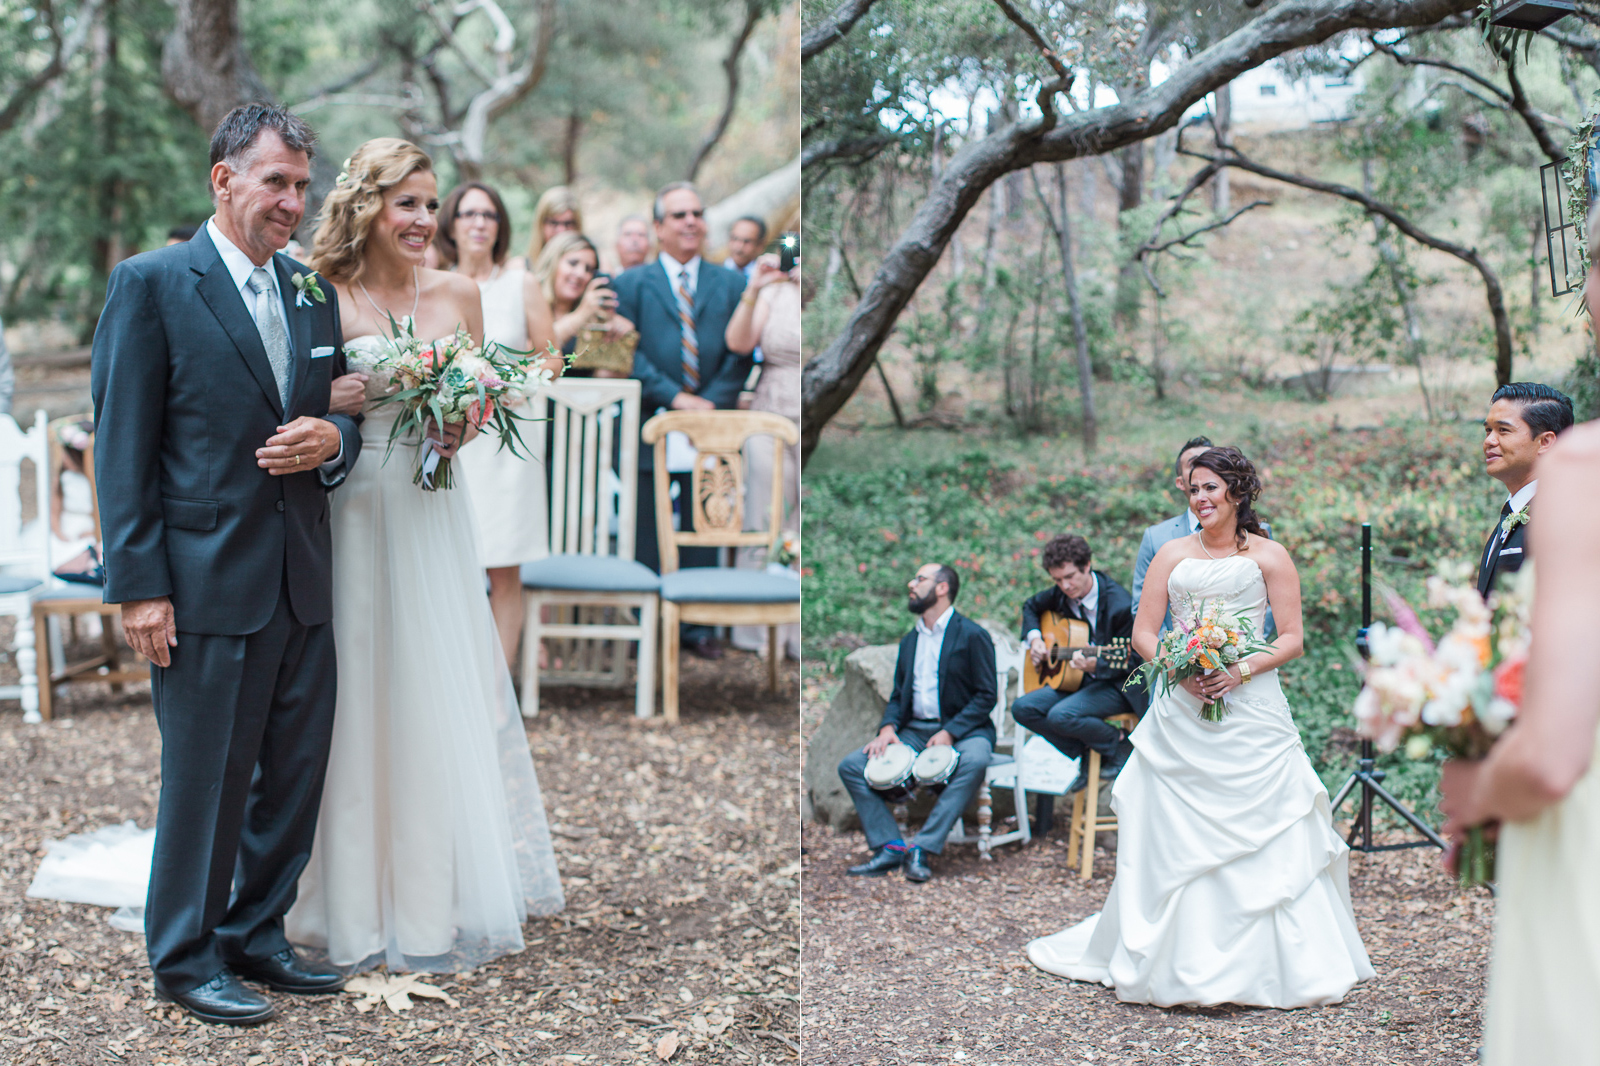 Two brides see each other during first look at their wedding ceremony - gay wedding